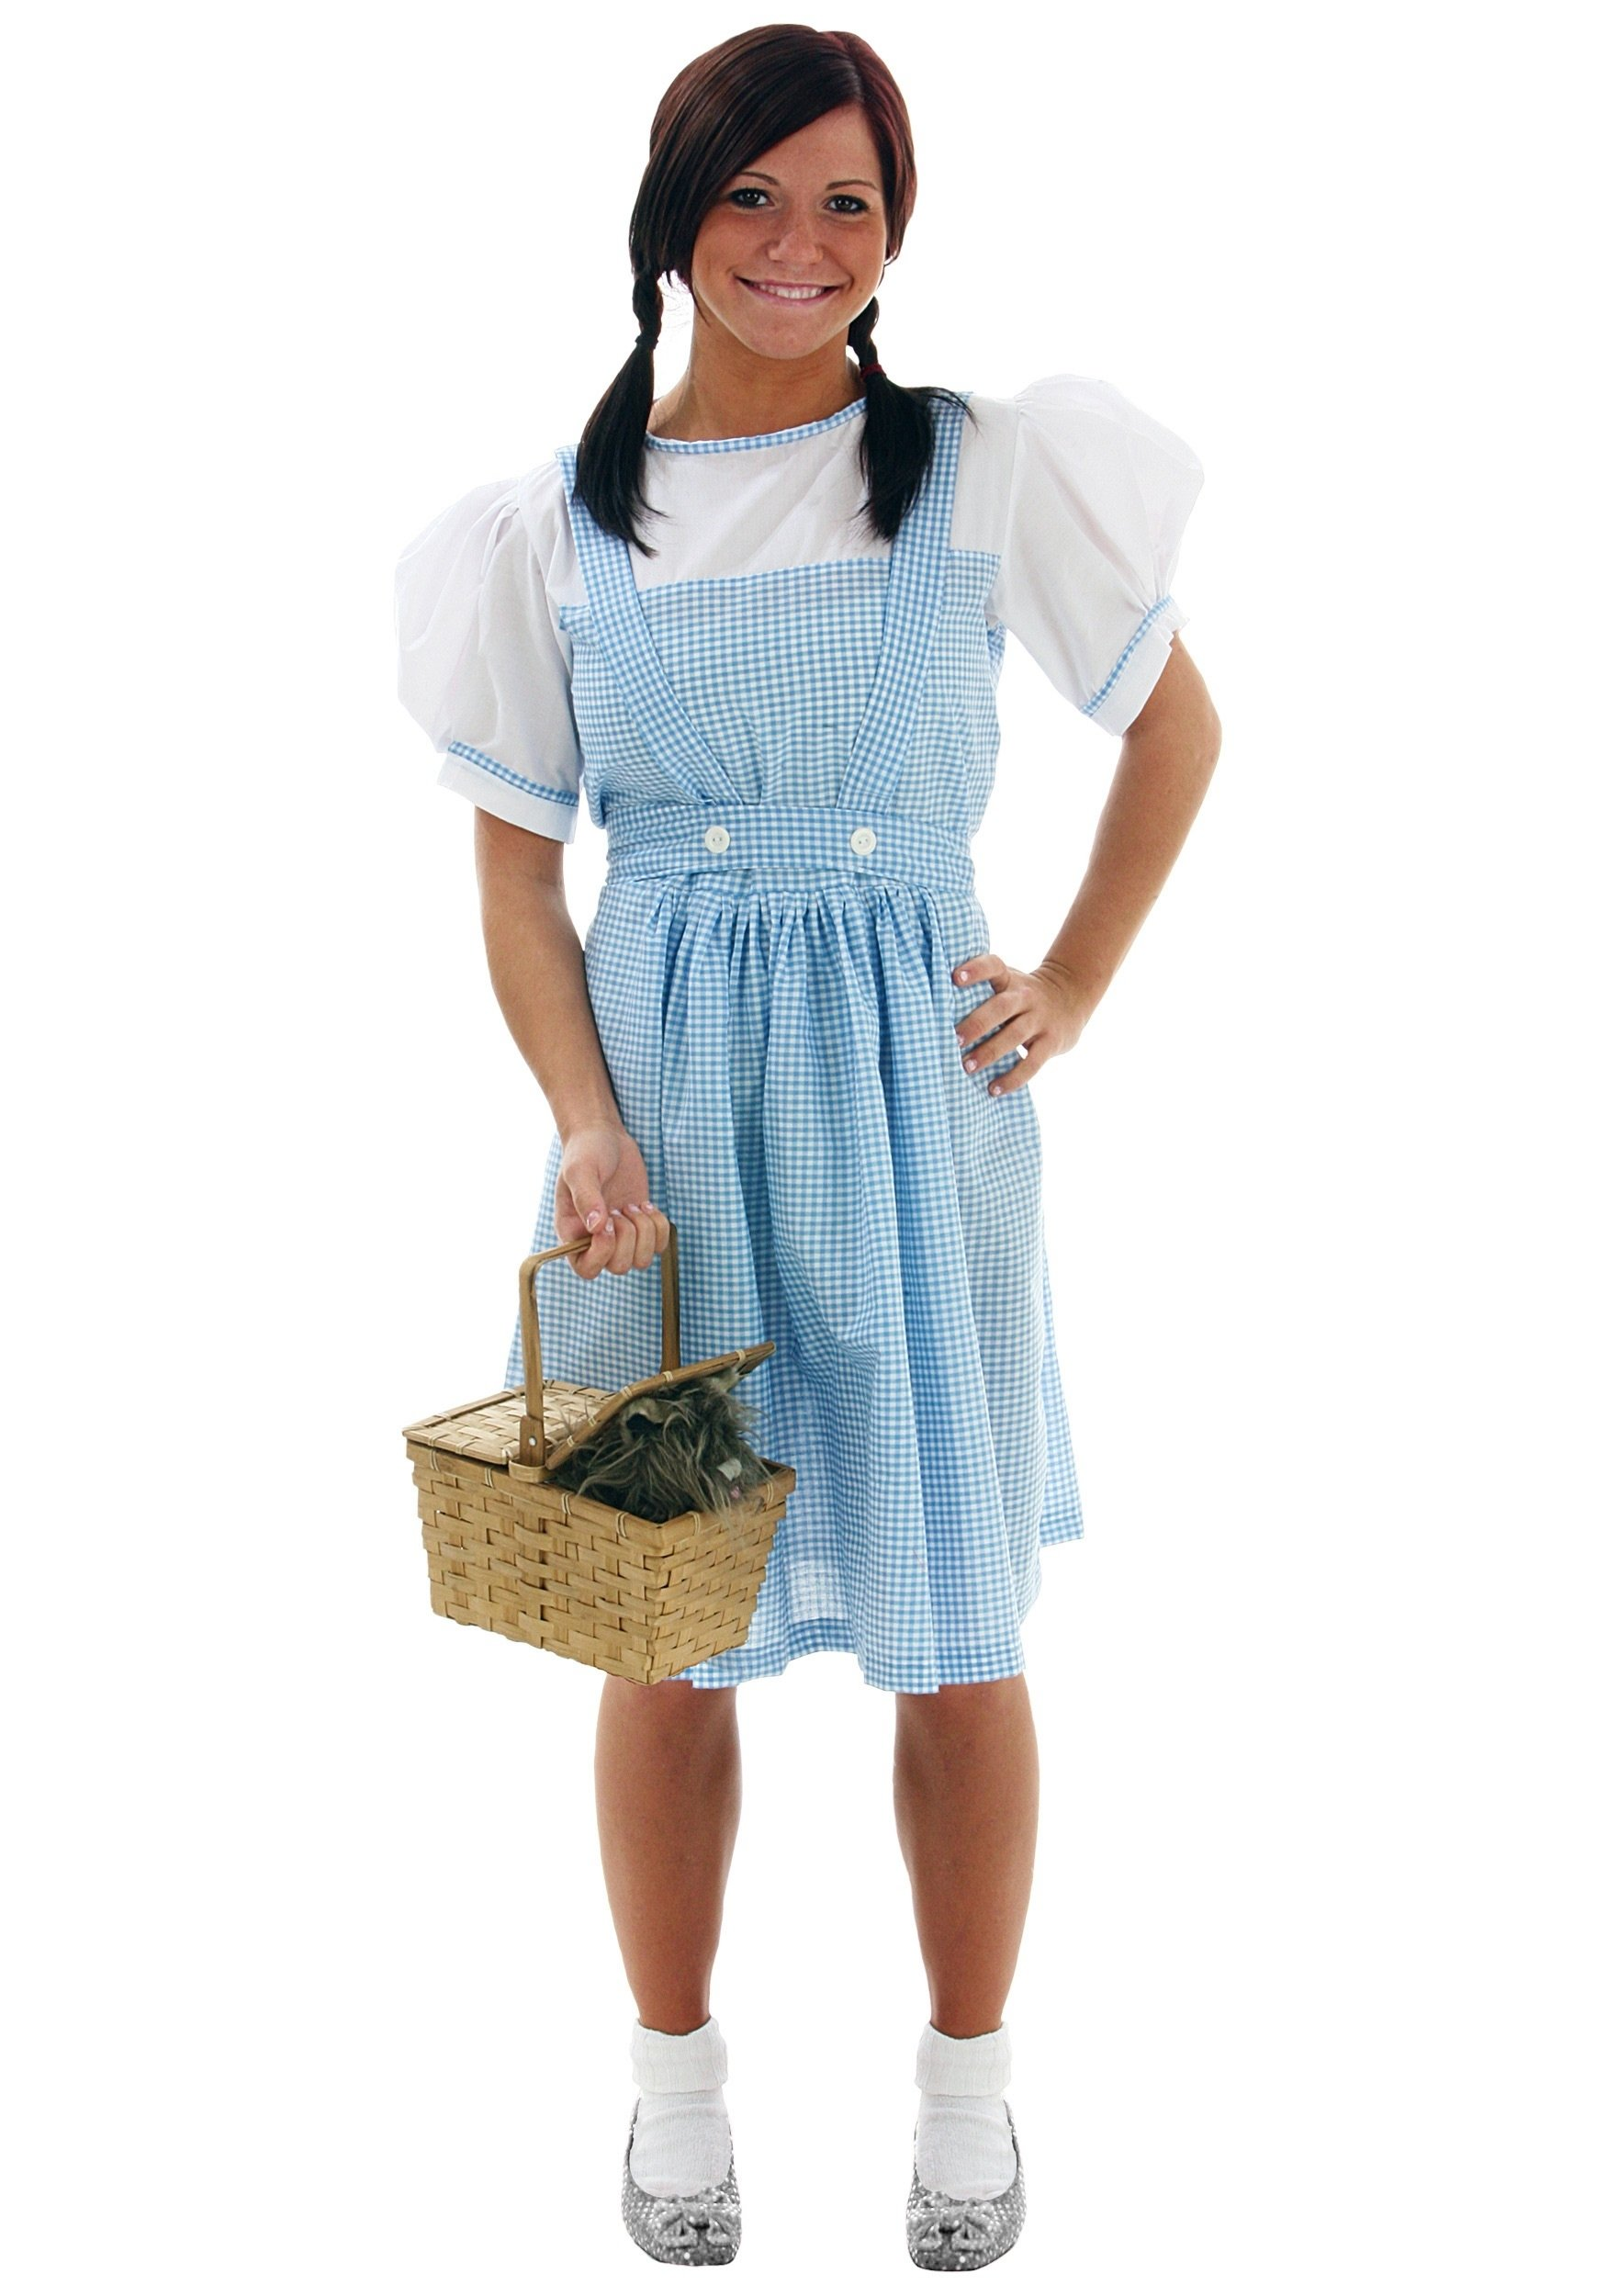 10 Most Recommended Halloween Costumes Teenage Girls Ideas teen classic dorothy costume dorothy wizard of oz costumes 2020